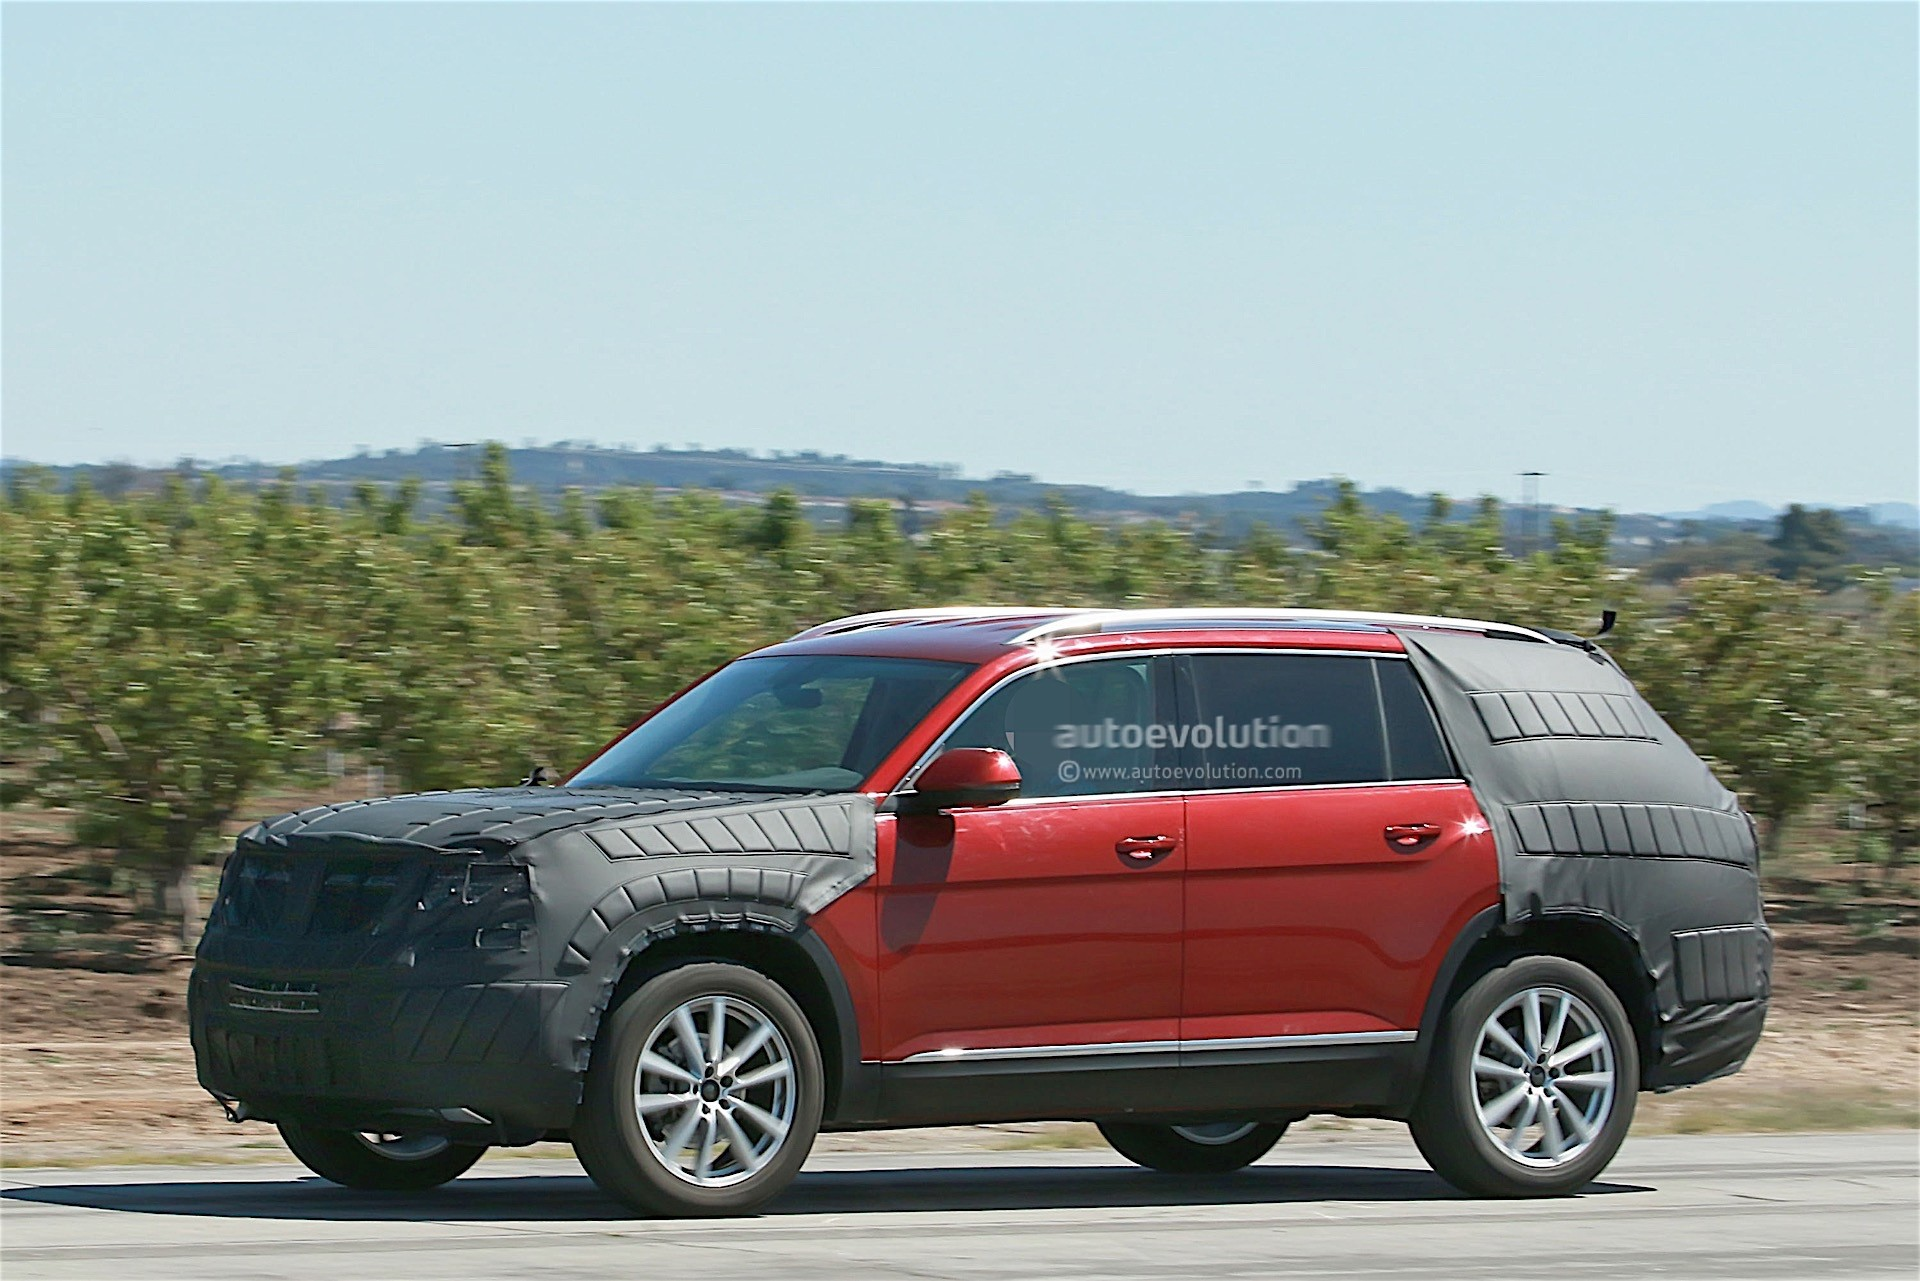 Volkswagen Testing a New SUV with Production Body, We Think It's the Crossblue - autoevolution